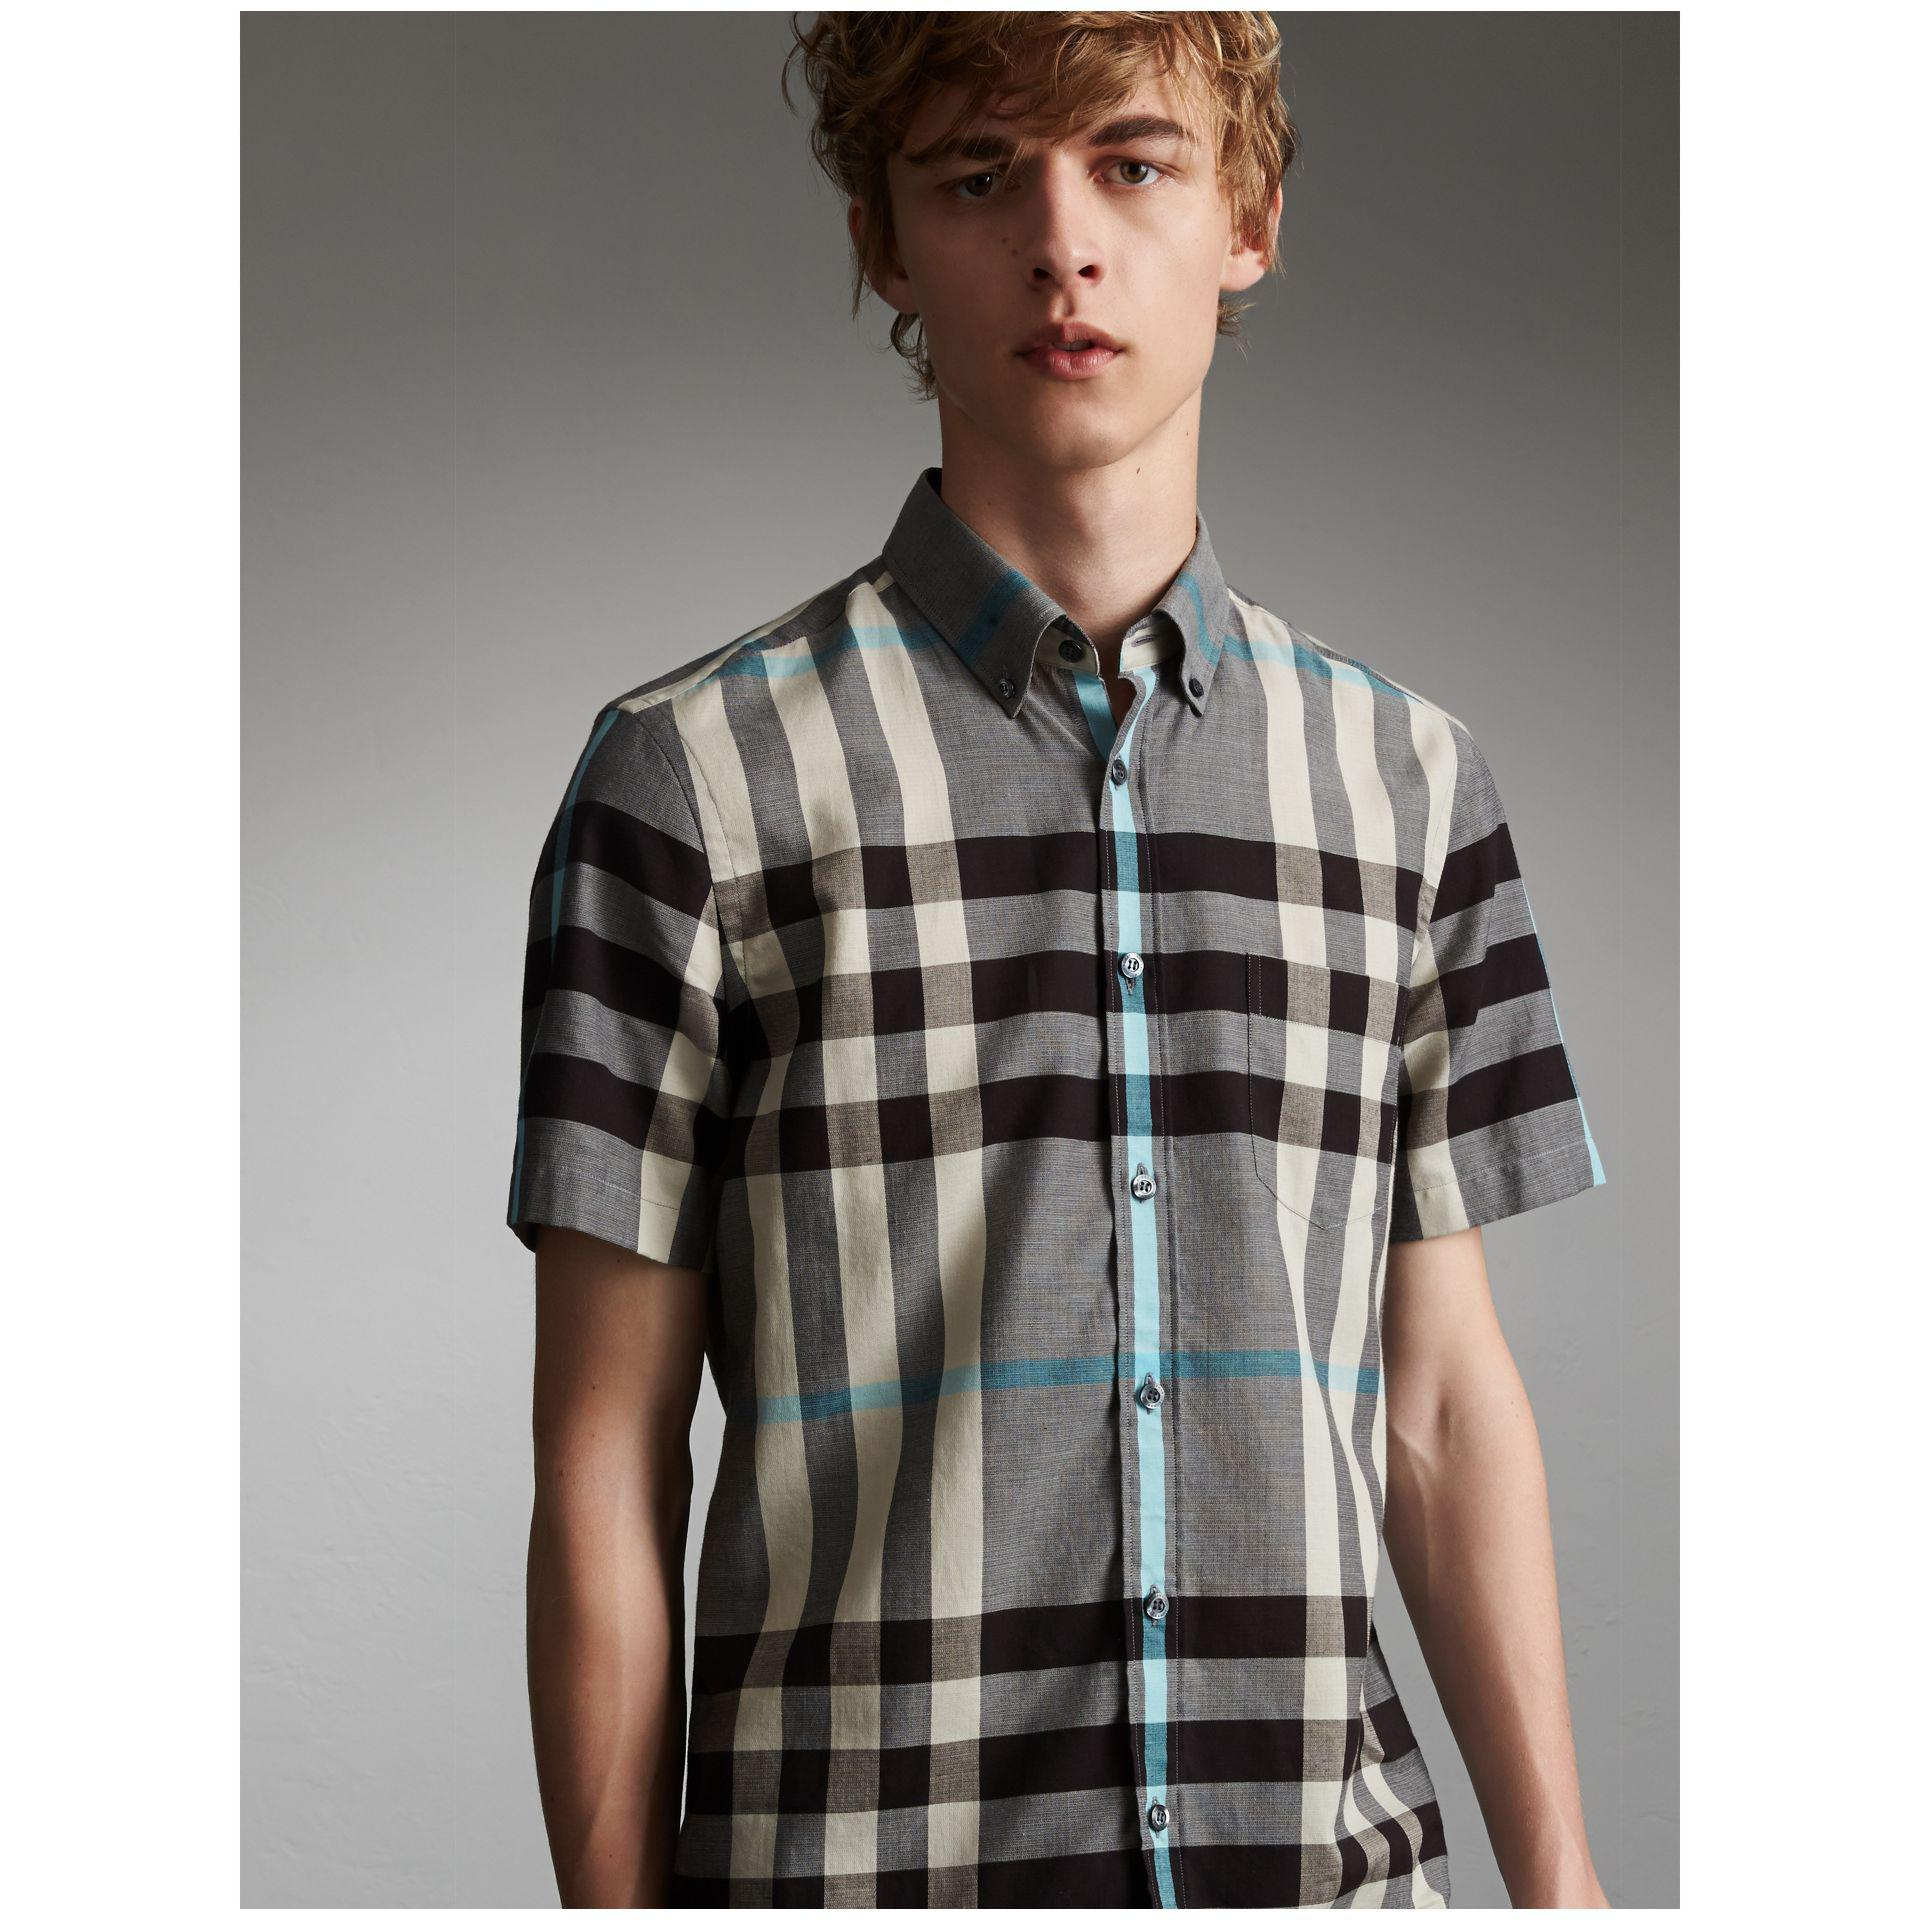 Burberry Button-down Collar Short-sleeve Check Cotton Shirt Mist Grey in Gray for Men - Lyst